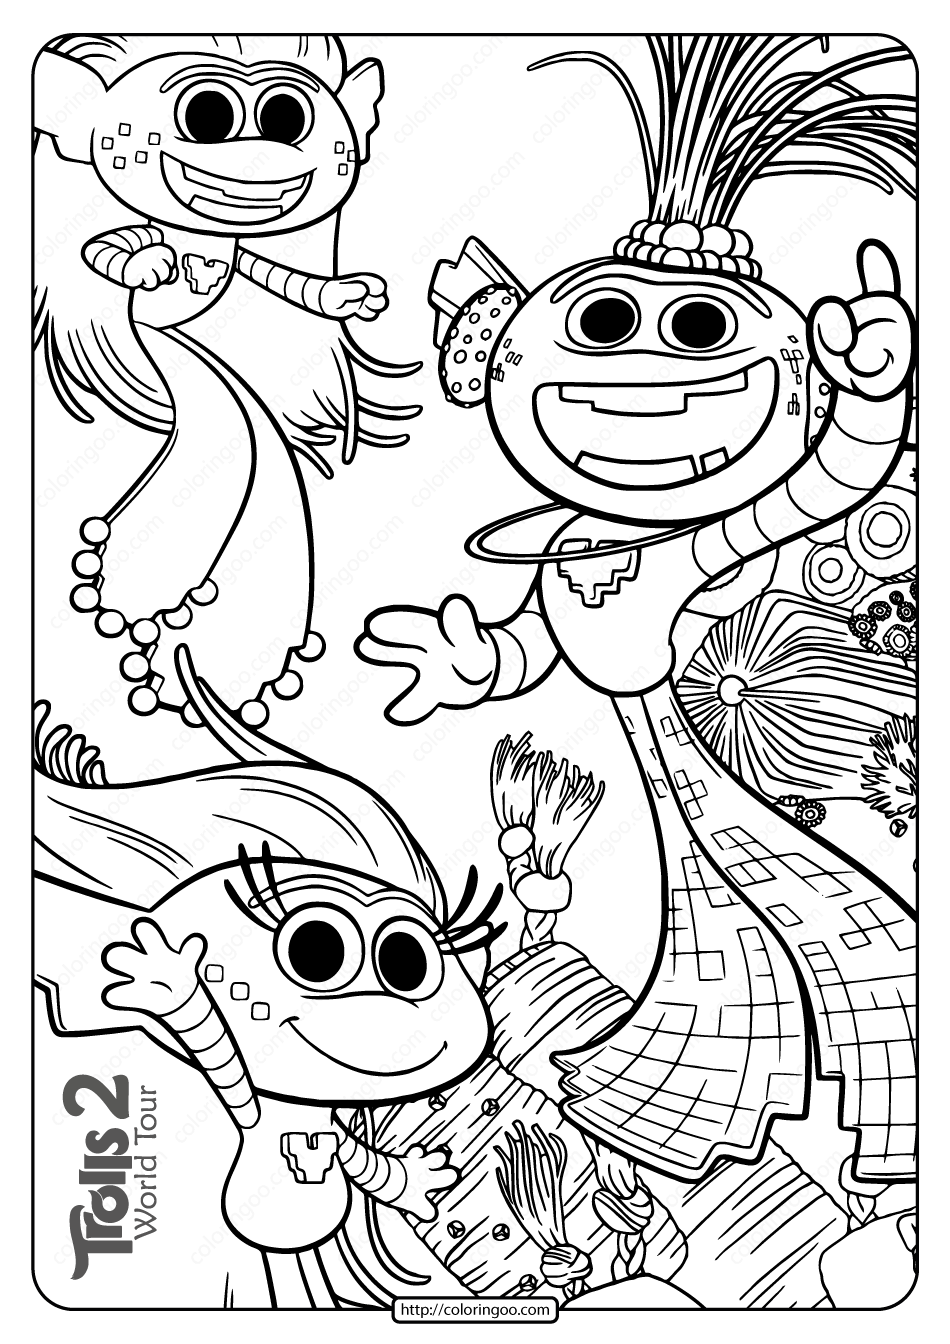 free printable pictures to color free easy to print owl coloring pages tulamama free pictures printable to color